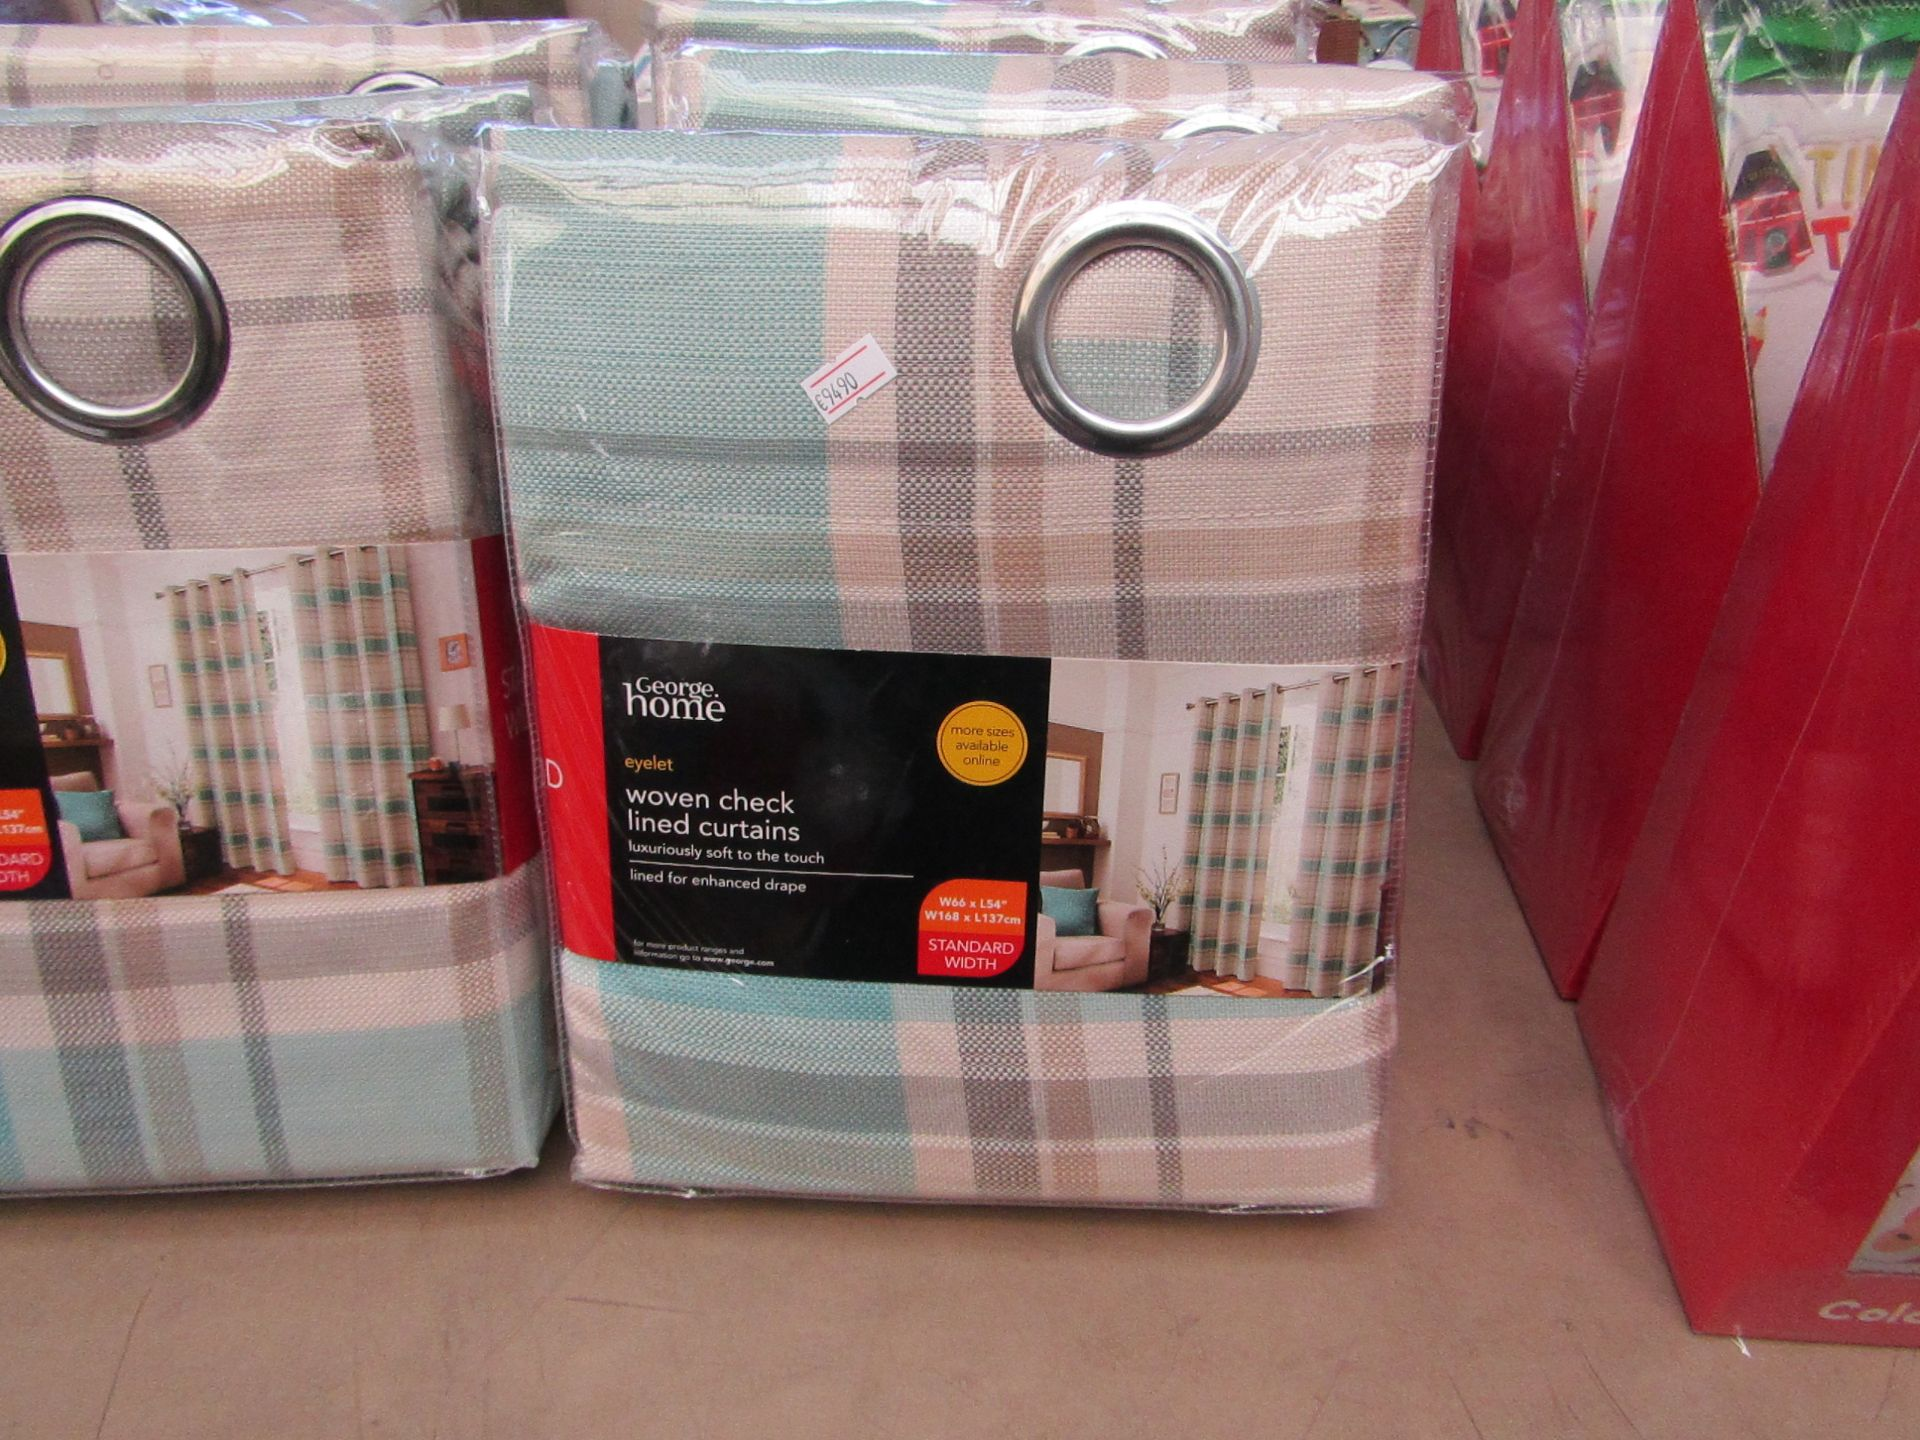 "Lot 3 - George Home woven checkered lined curtains, W 66 x L 54"", new and packaged."